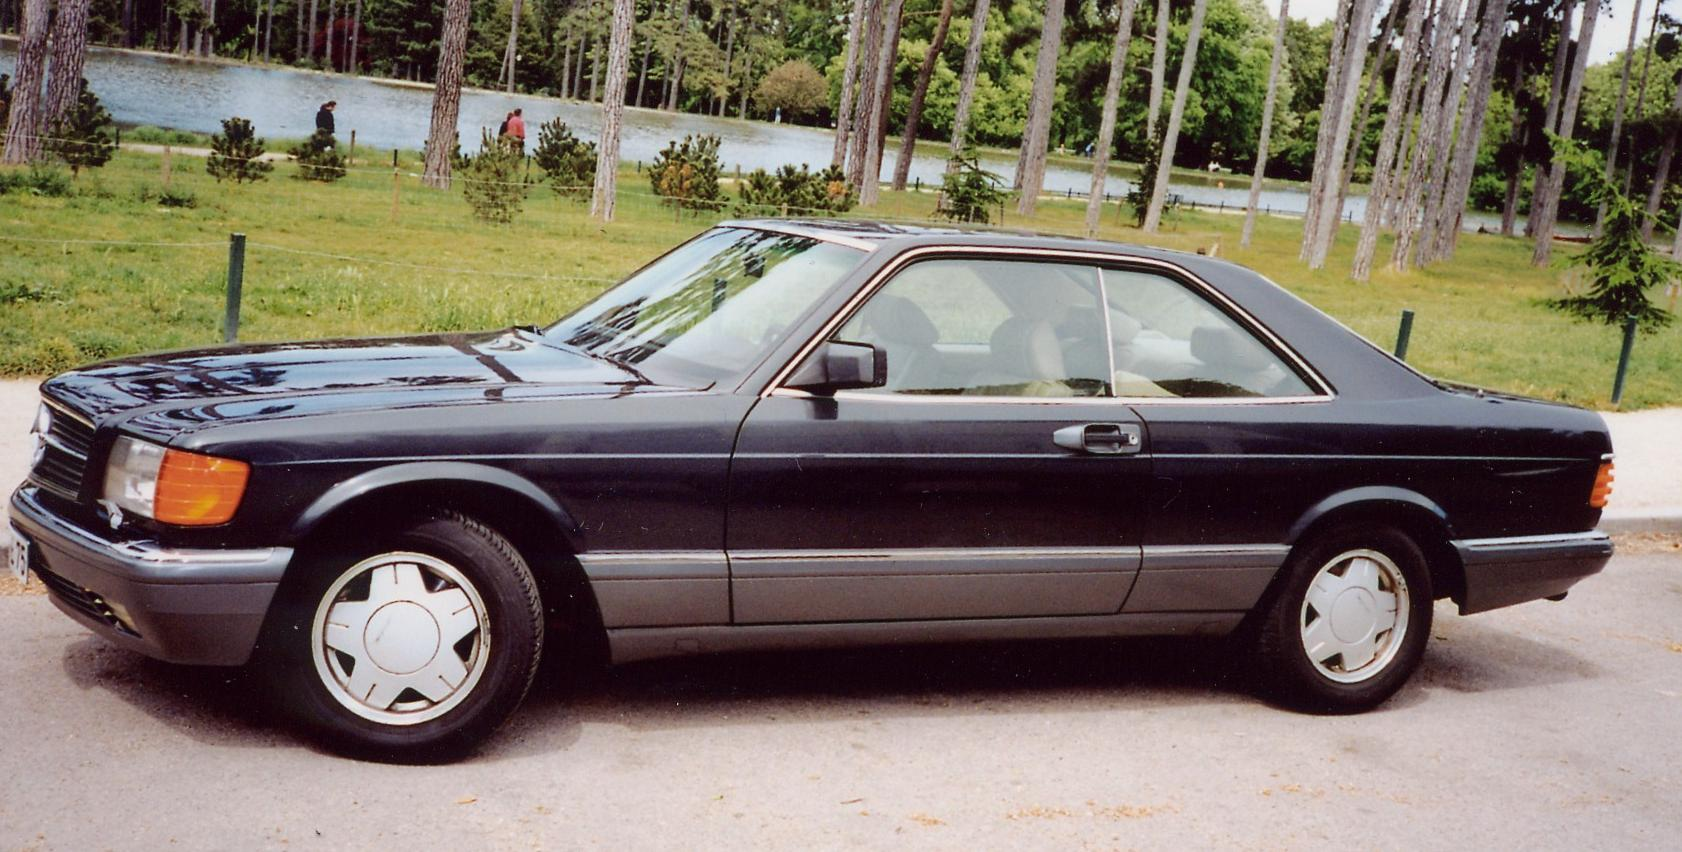 file 1986 1991 mercedes benz 560 sec c126 coupe